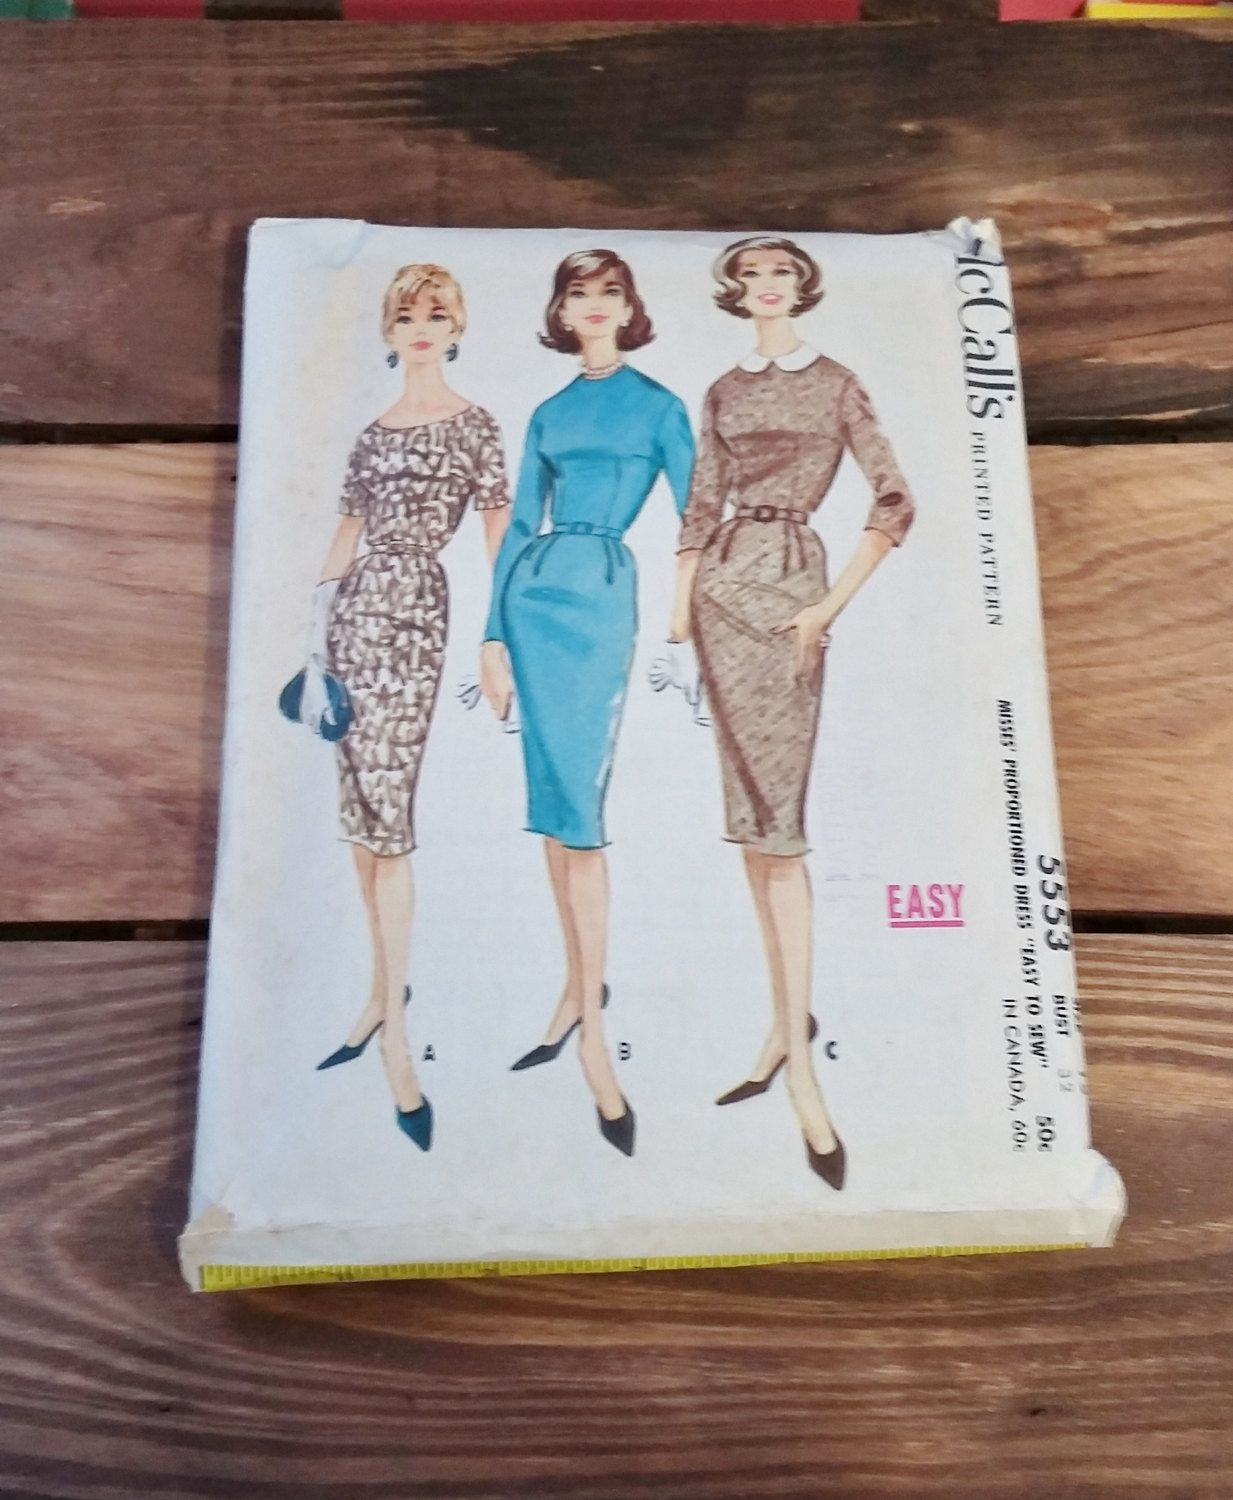 Vintage Pattern McCall's 5553 Misses Easy to Sew Dress 60's Mid Century Fashion Sewing Ephemera Illustration by OffbeatAvenue on Etsy